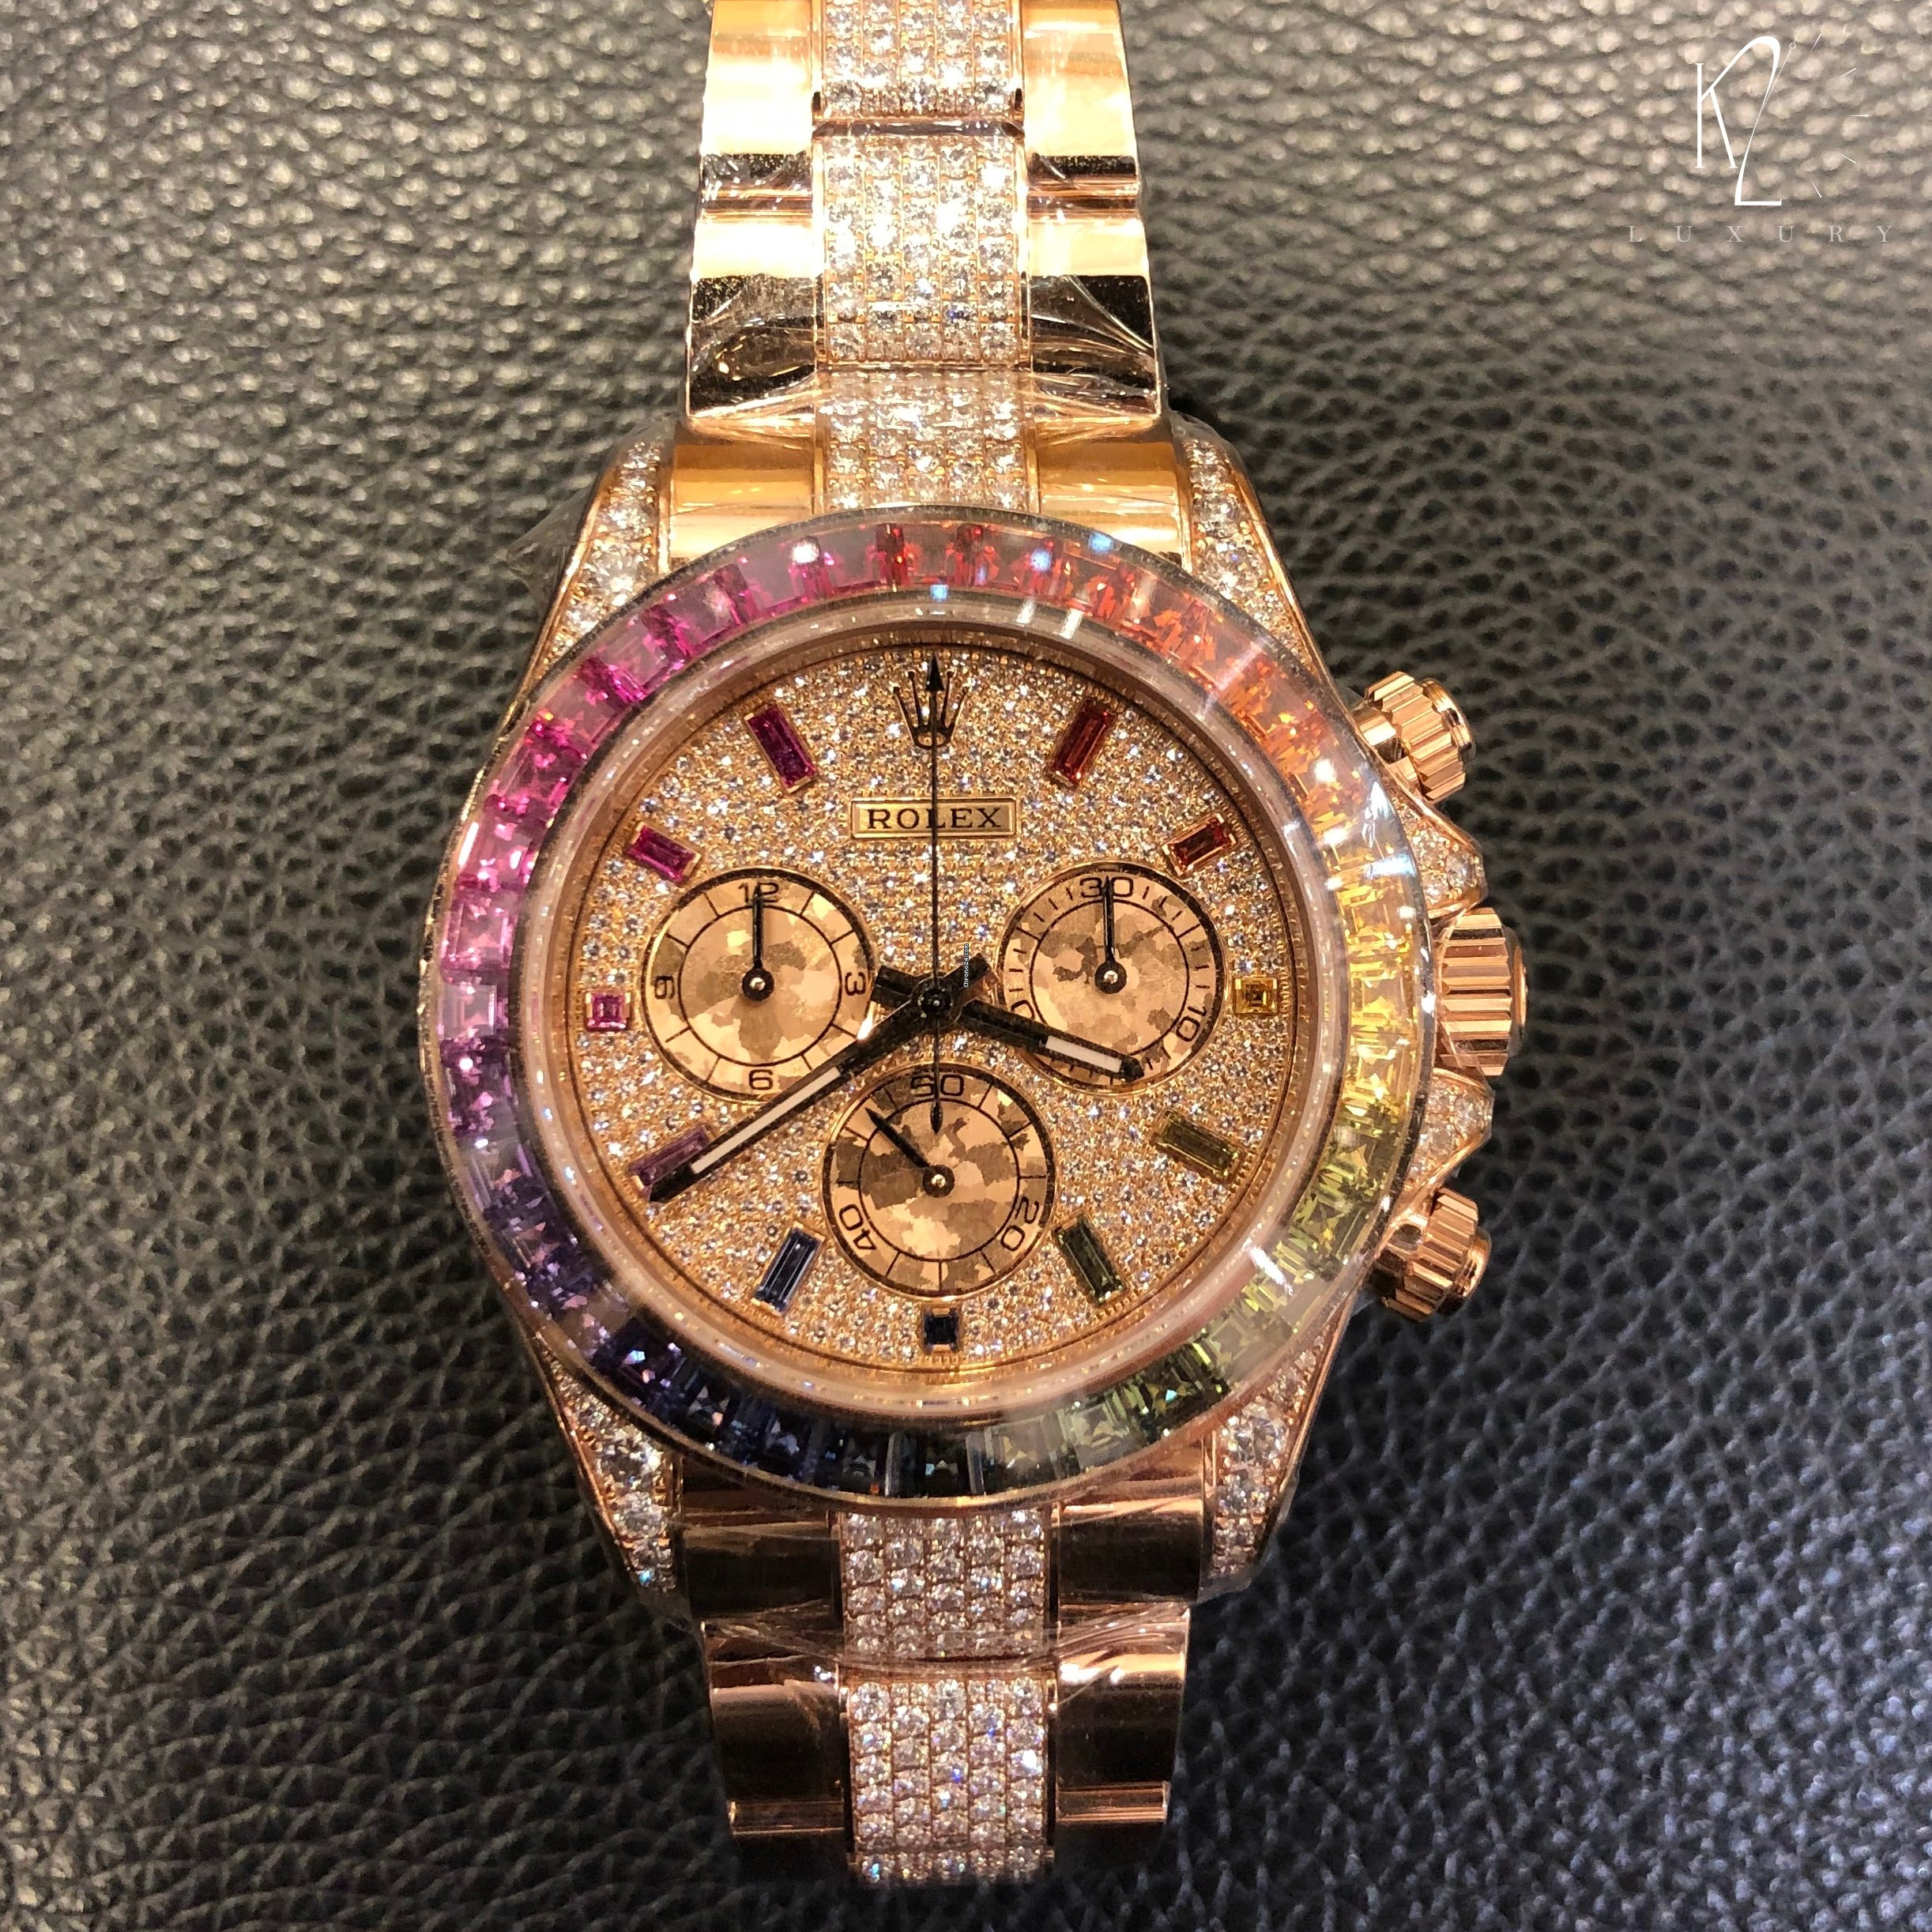 Rolex Daytona Rainbow in Everose Pave Diamond Dial , 116595RBOW